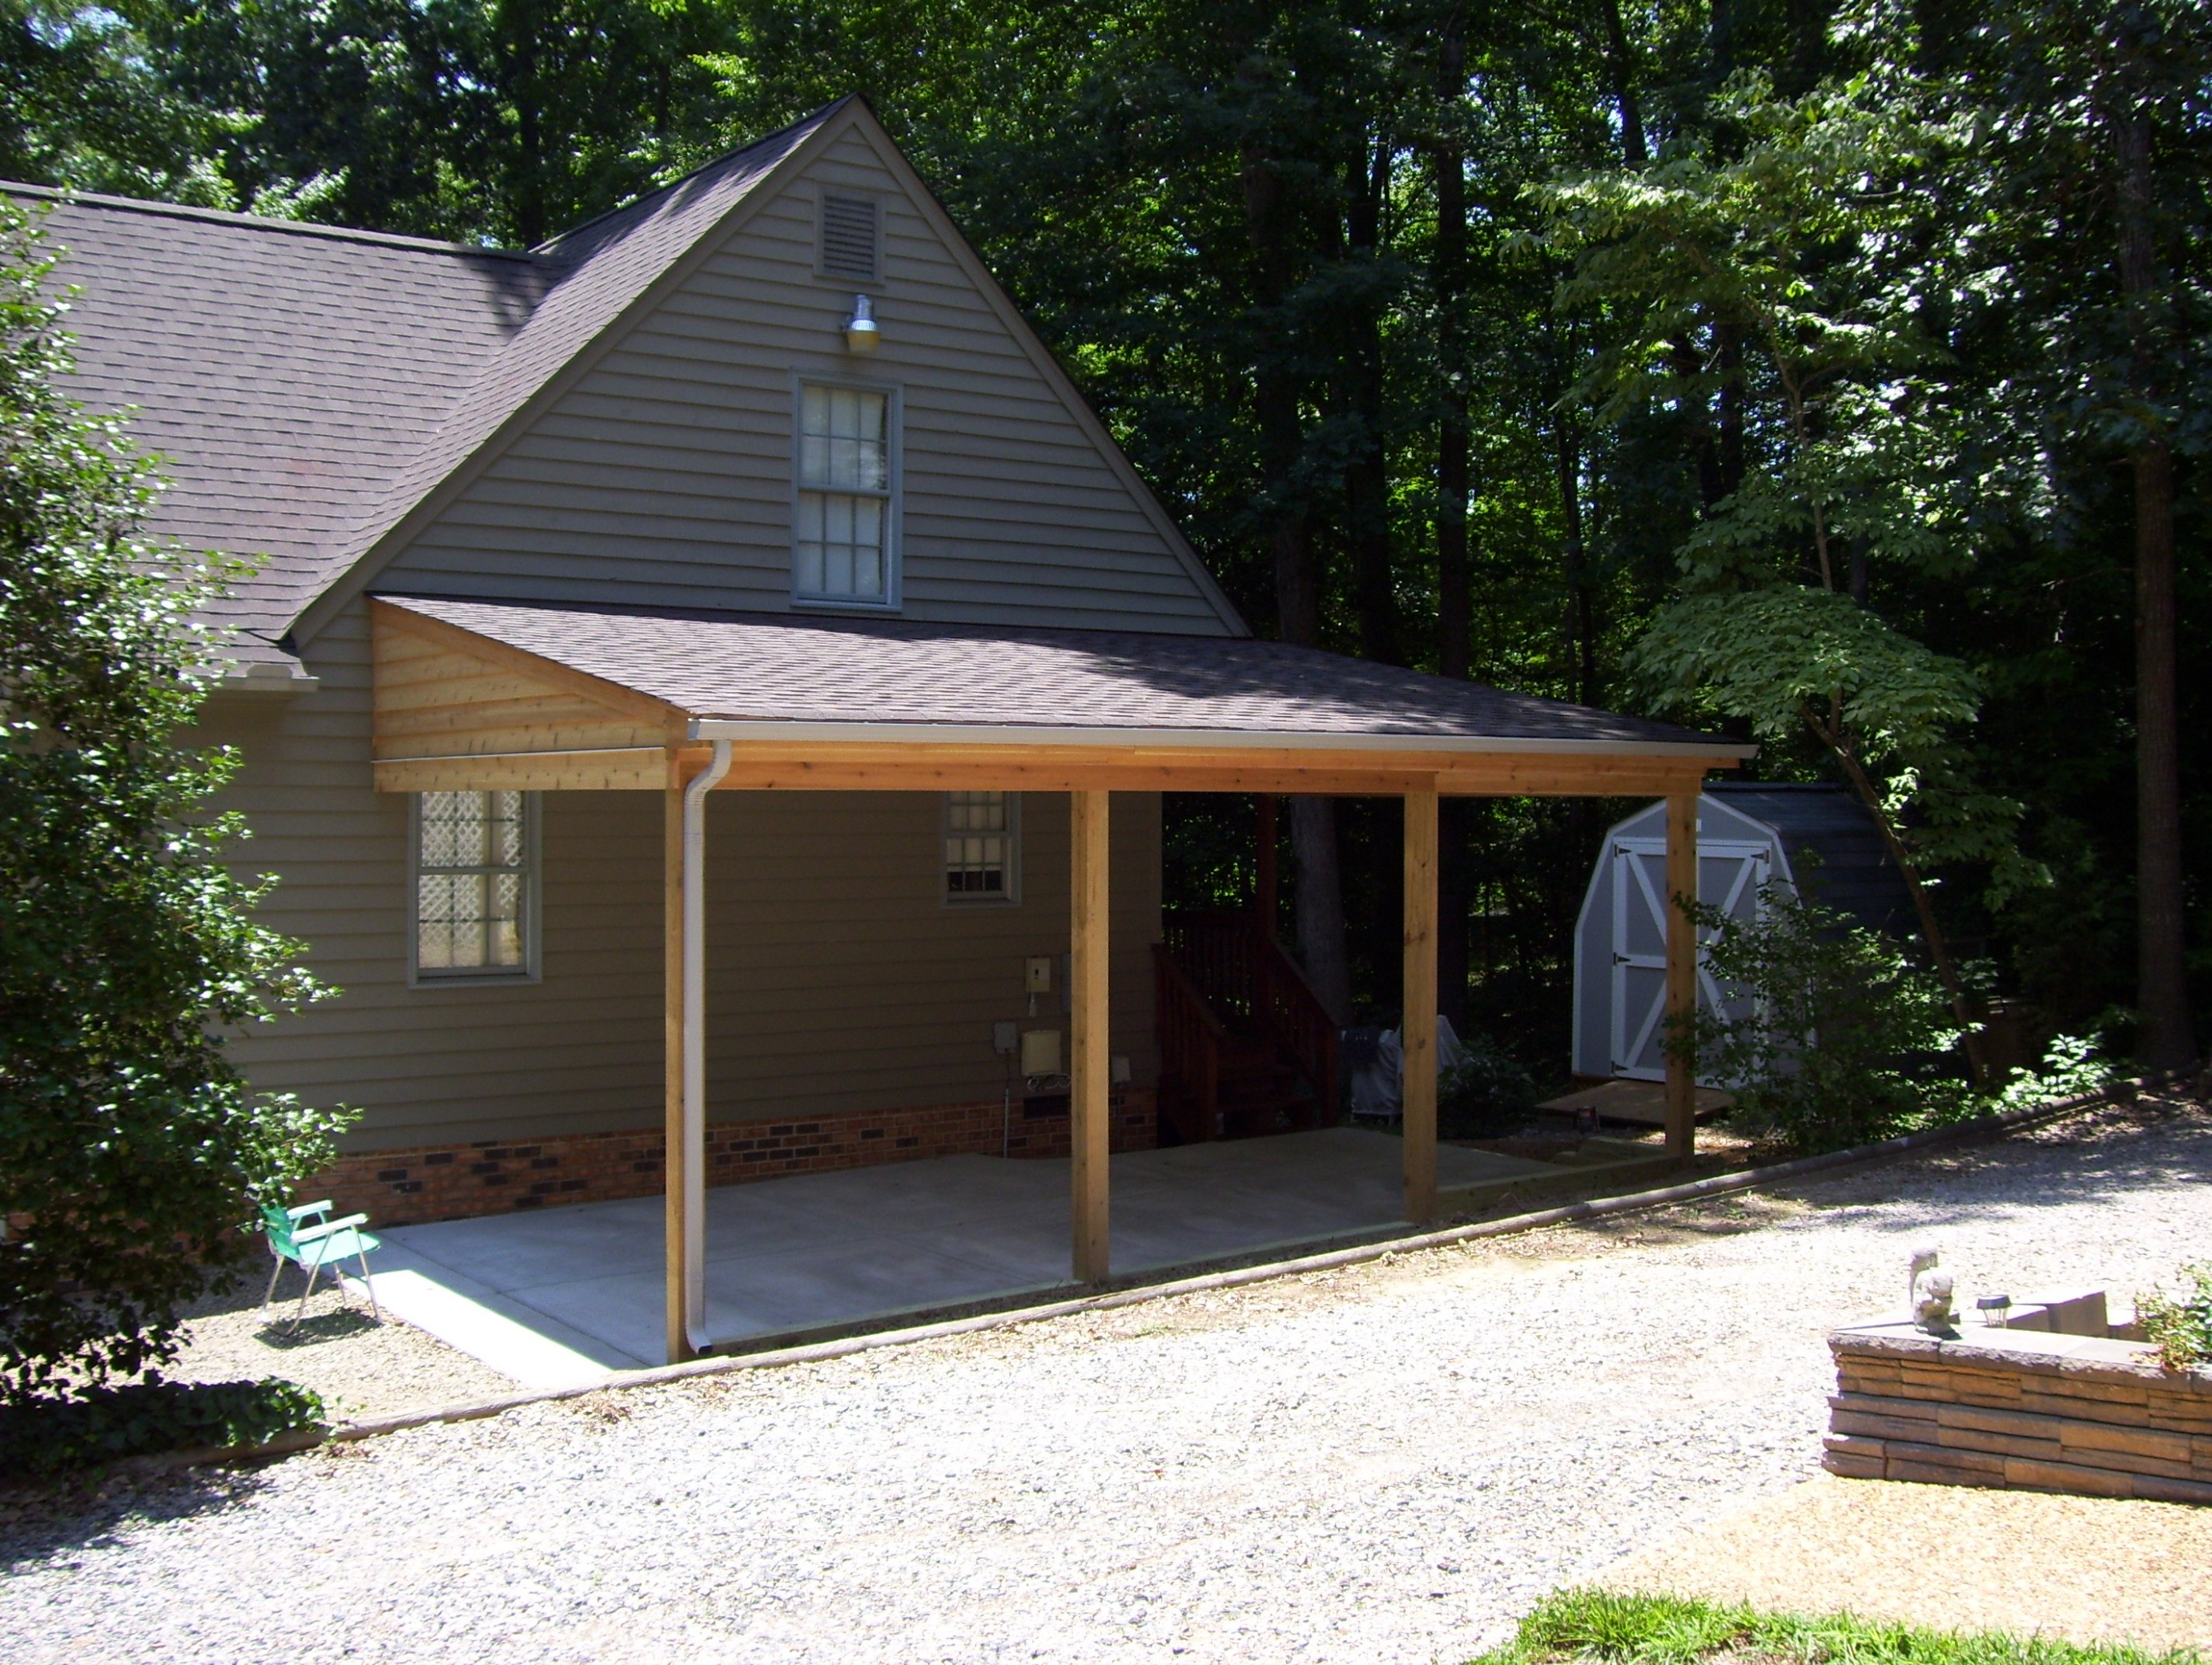 Ten Facts You Never Knew About House Carport | house carport